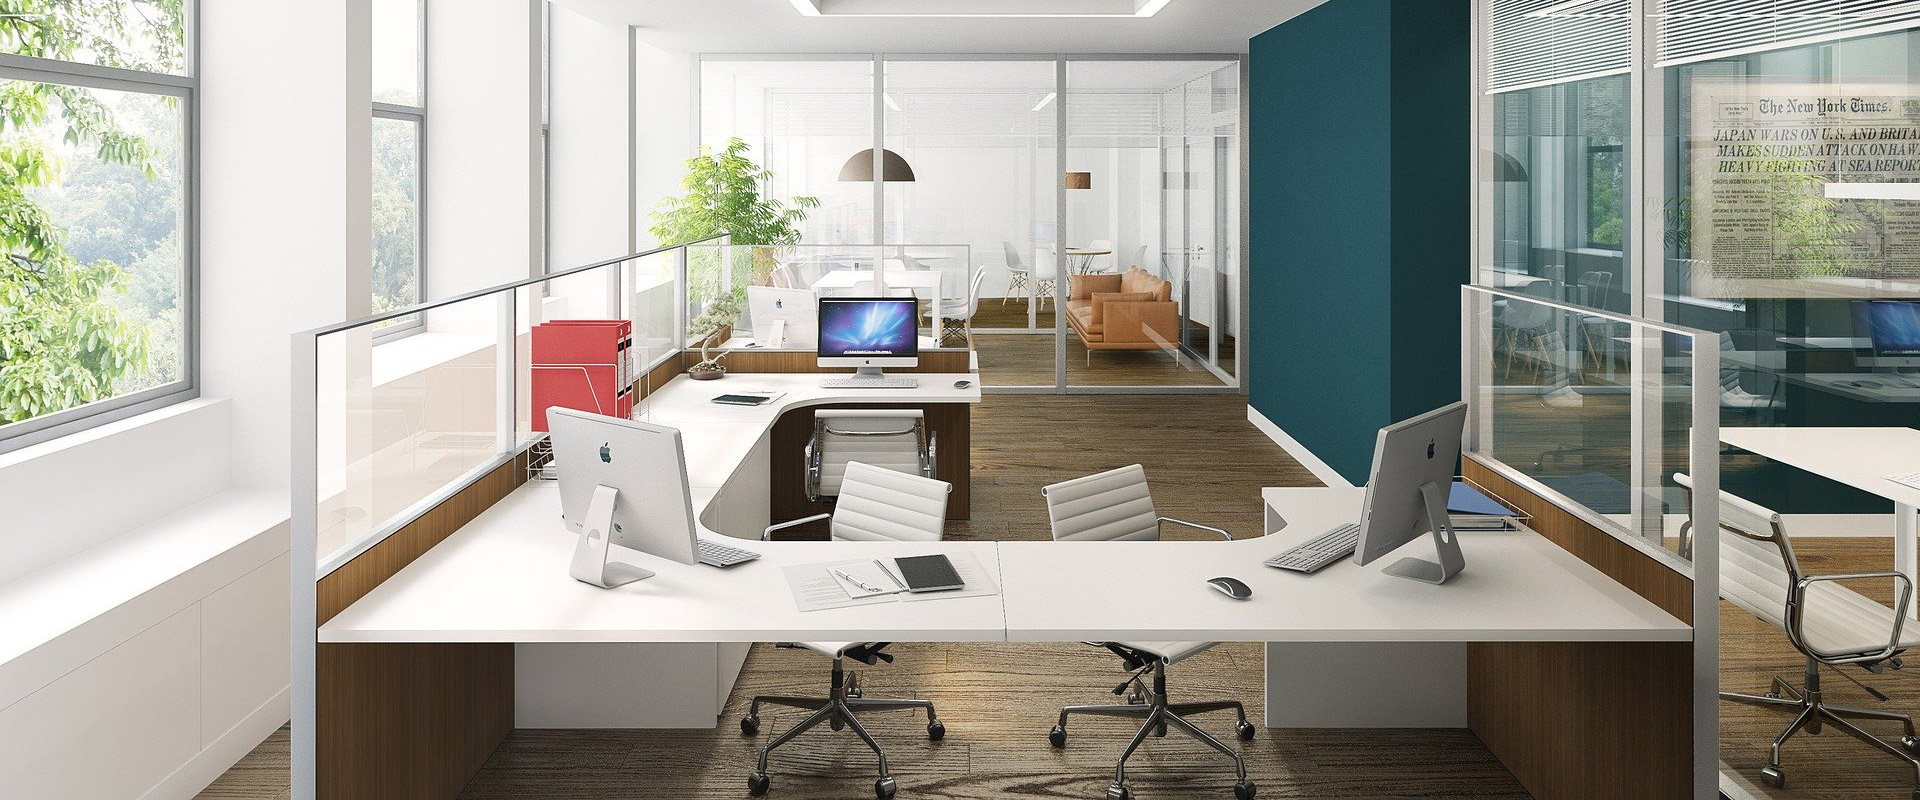 Office Design Banner